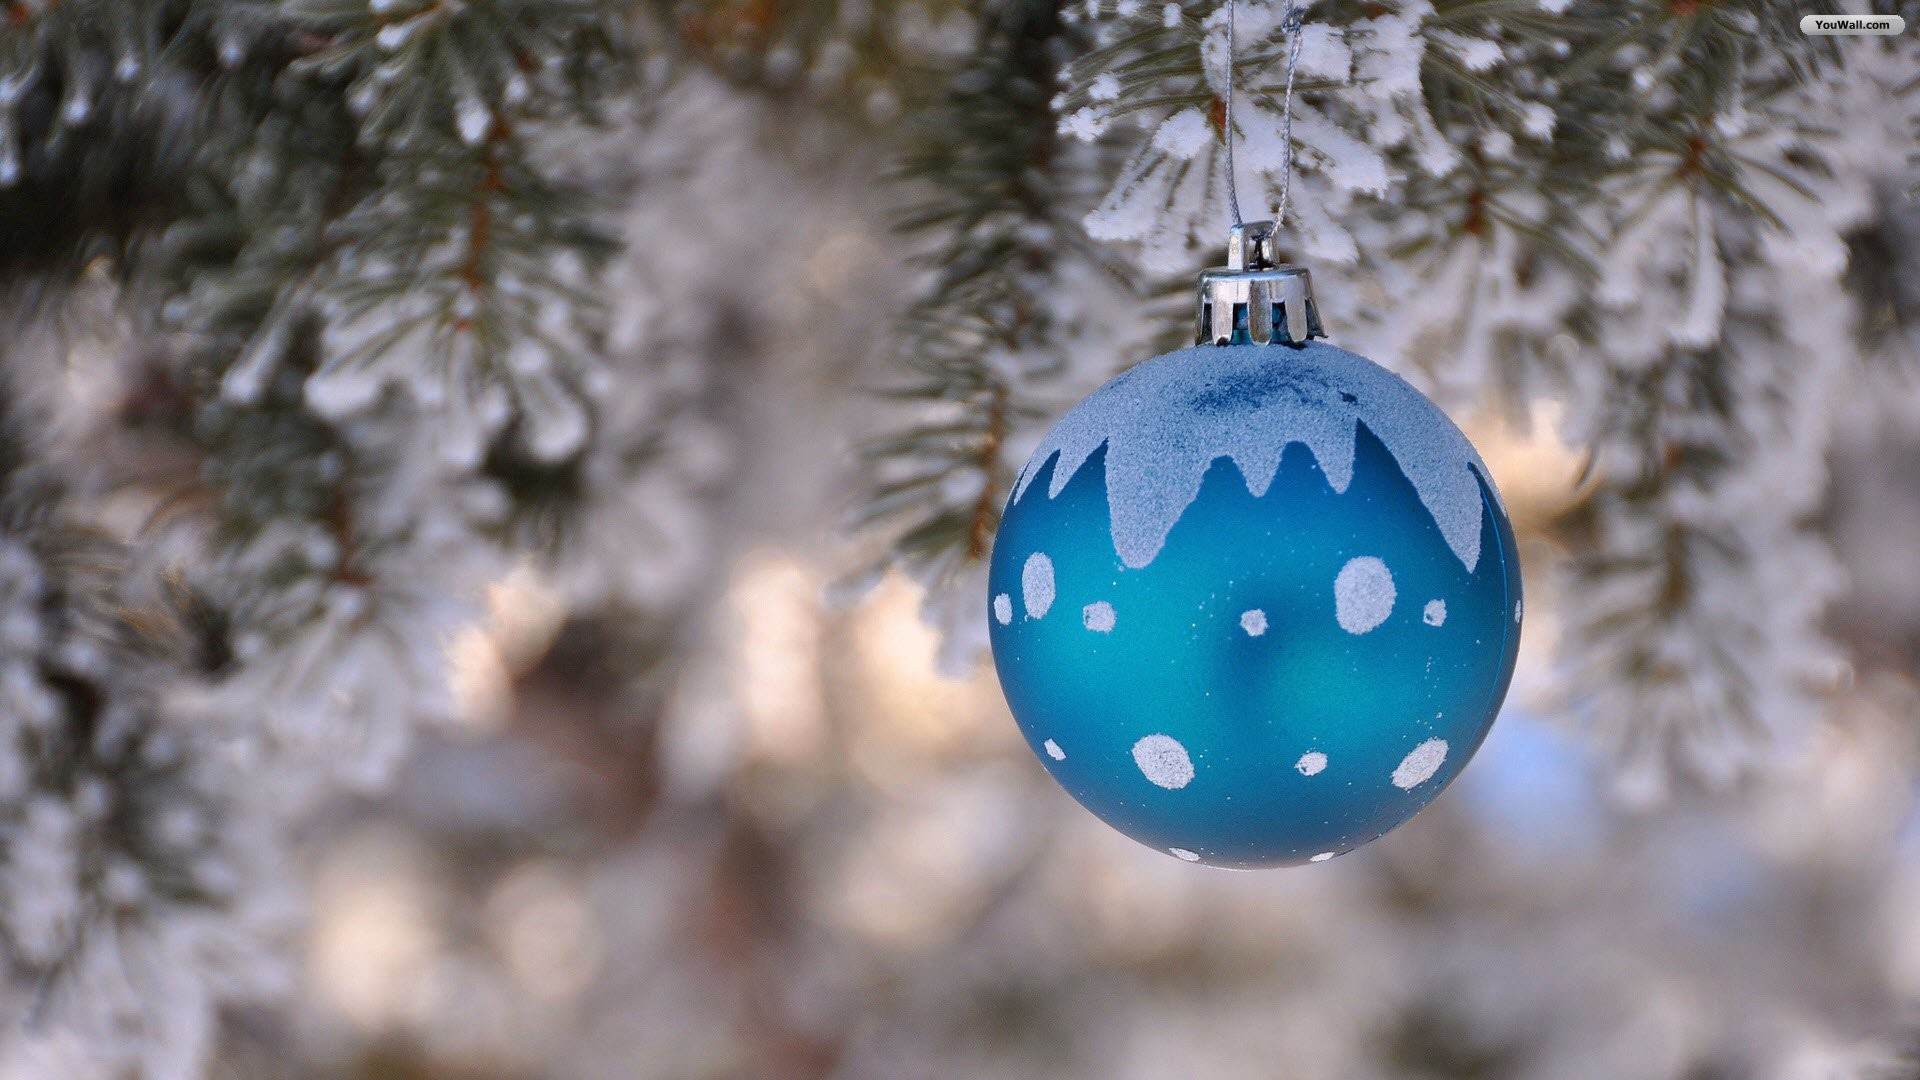 Blue Christmas Wallpaper (70+ images)